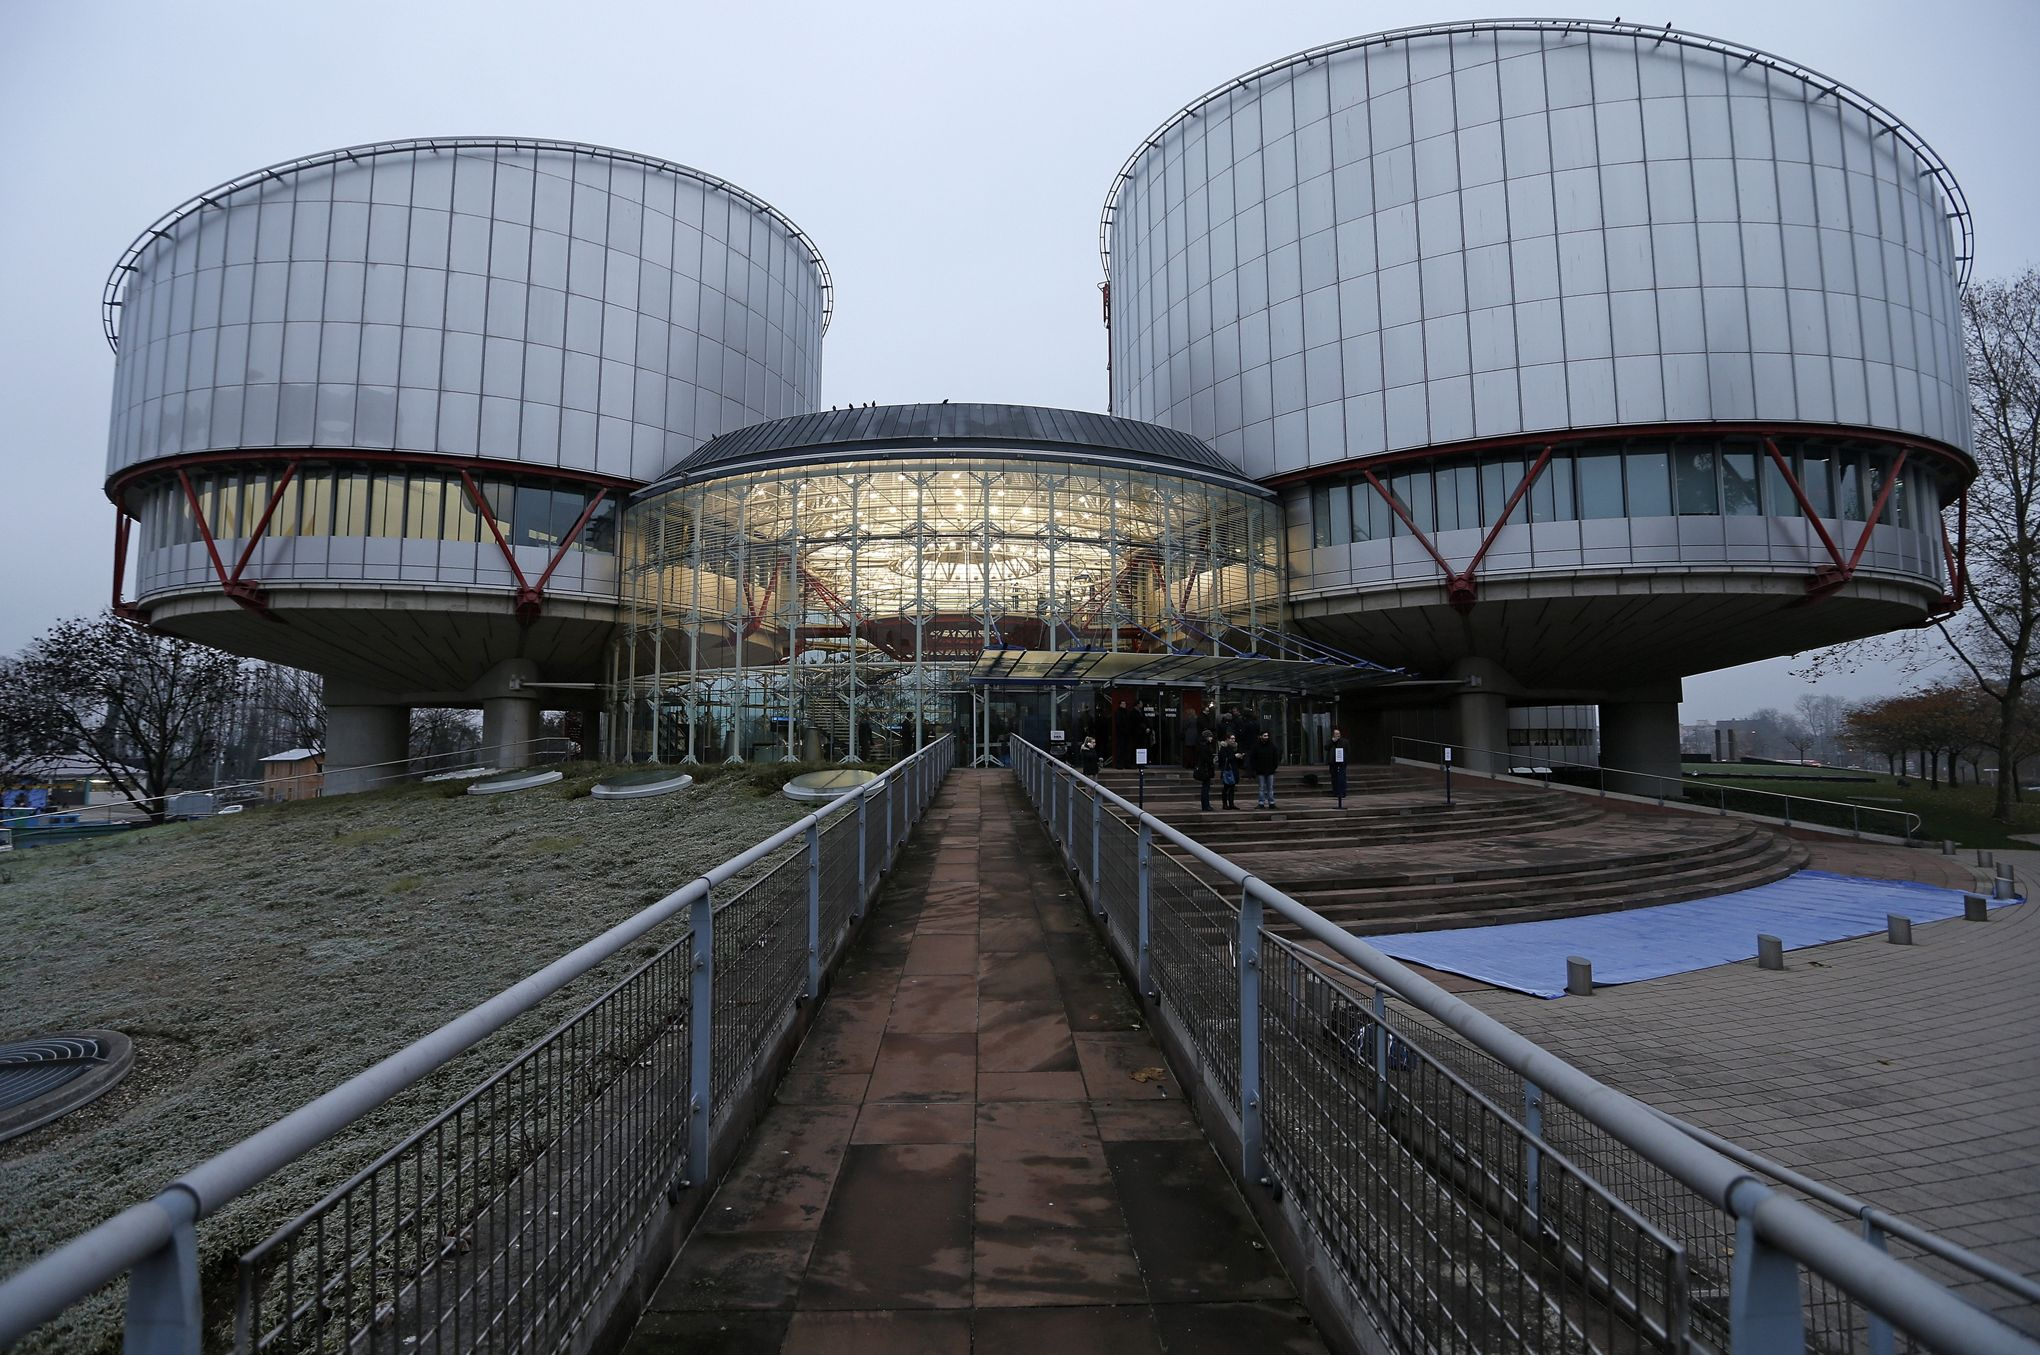 General view of the European Court of Human Rights building in Strasbourg